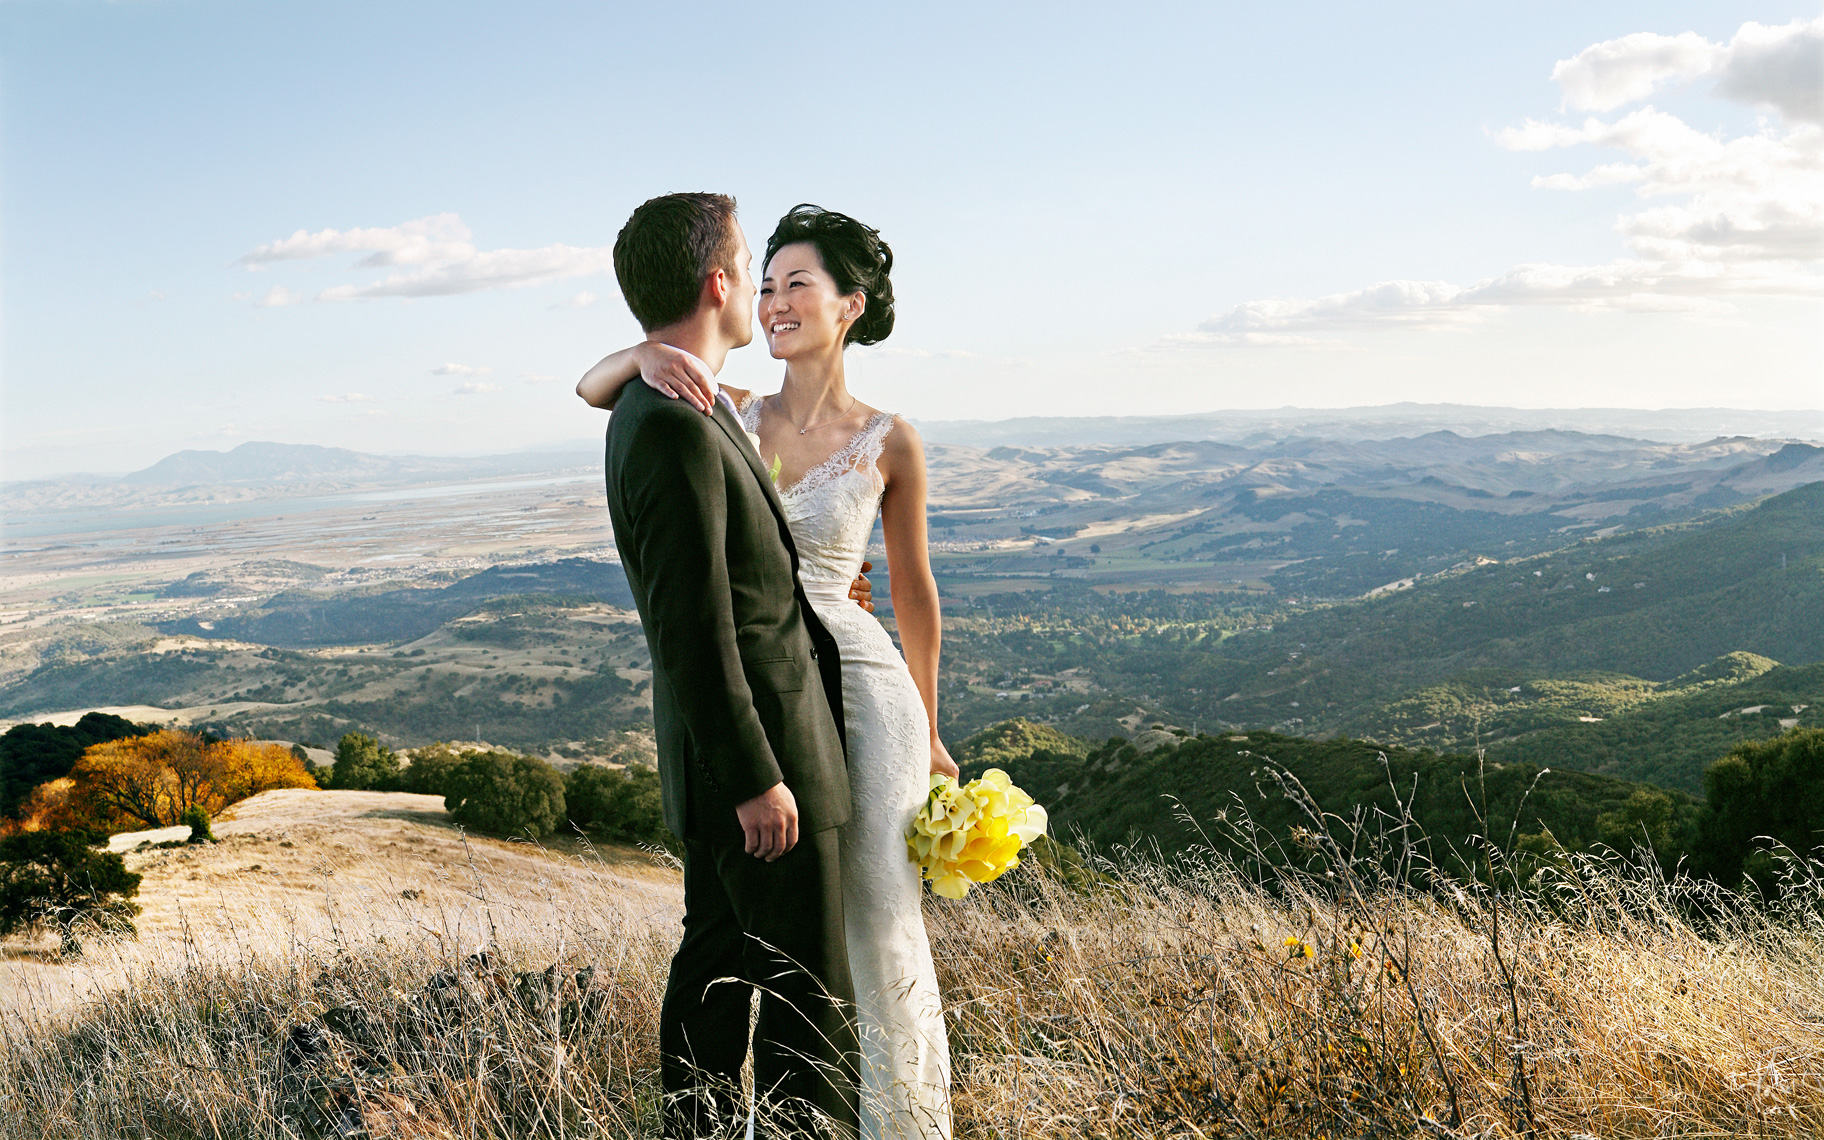 Bride and Groom Portrait over Napa Valley, California. Destination Wedding location.